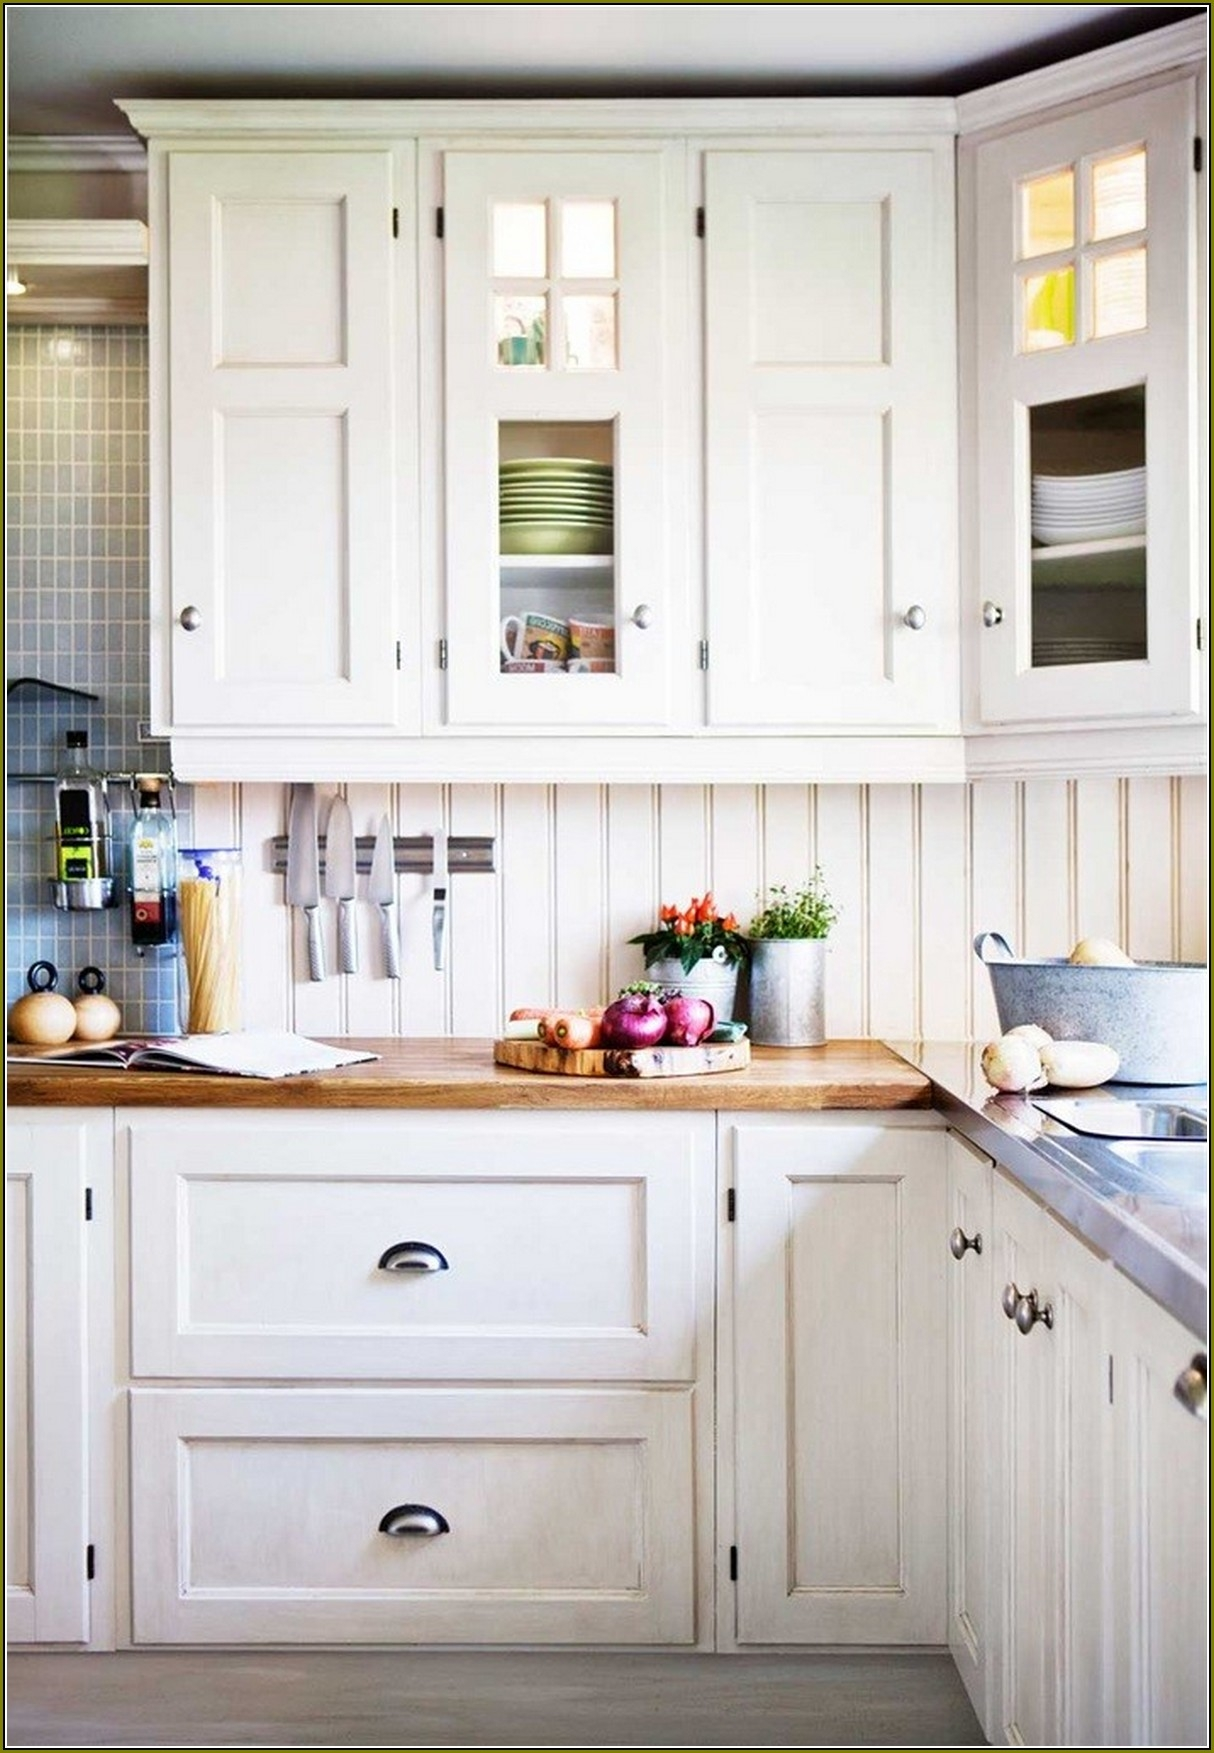 Cabinet Knobs For White Kitchen